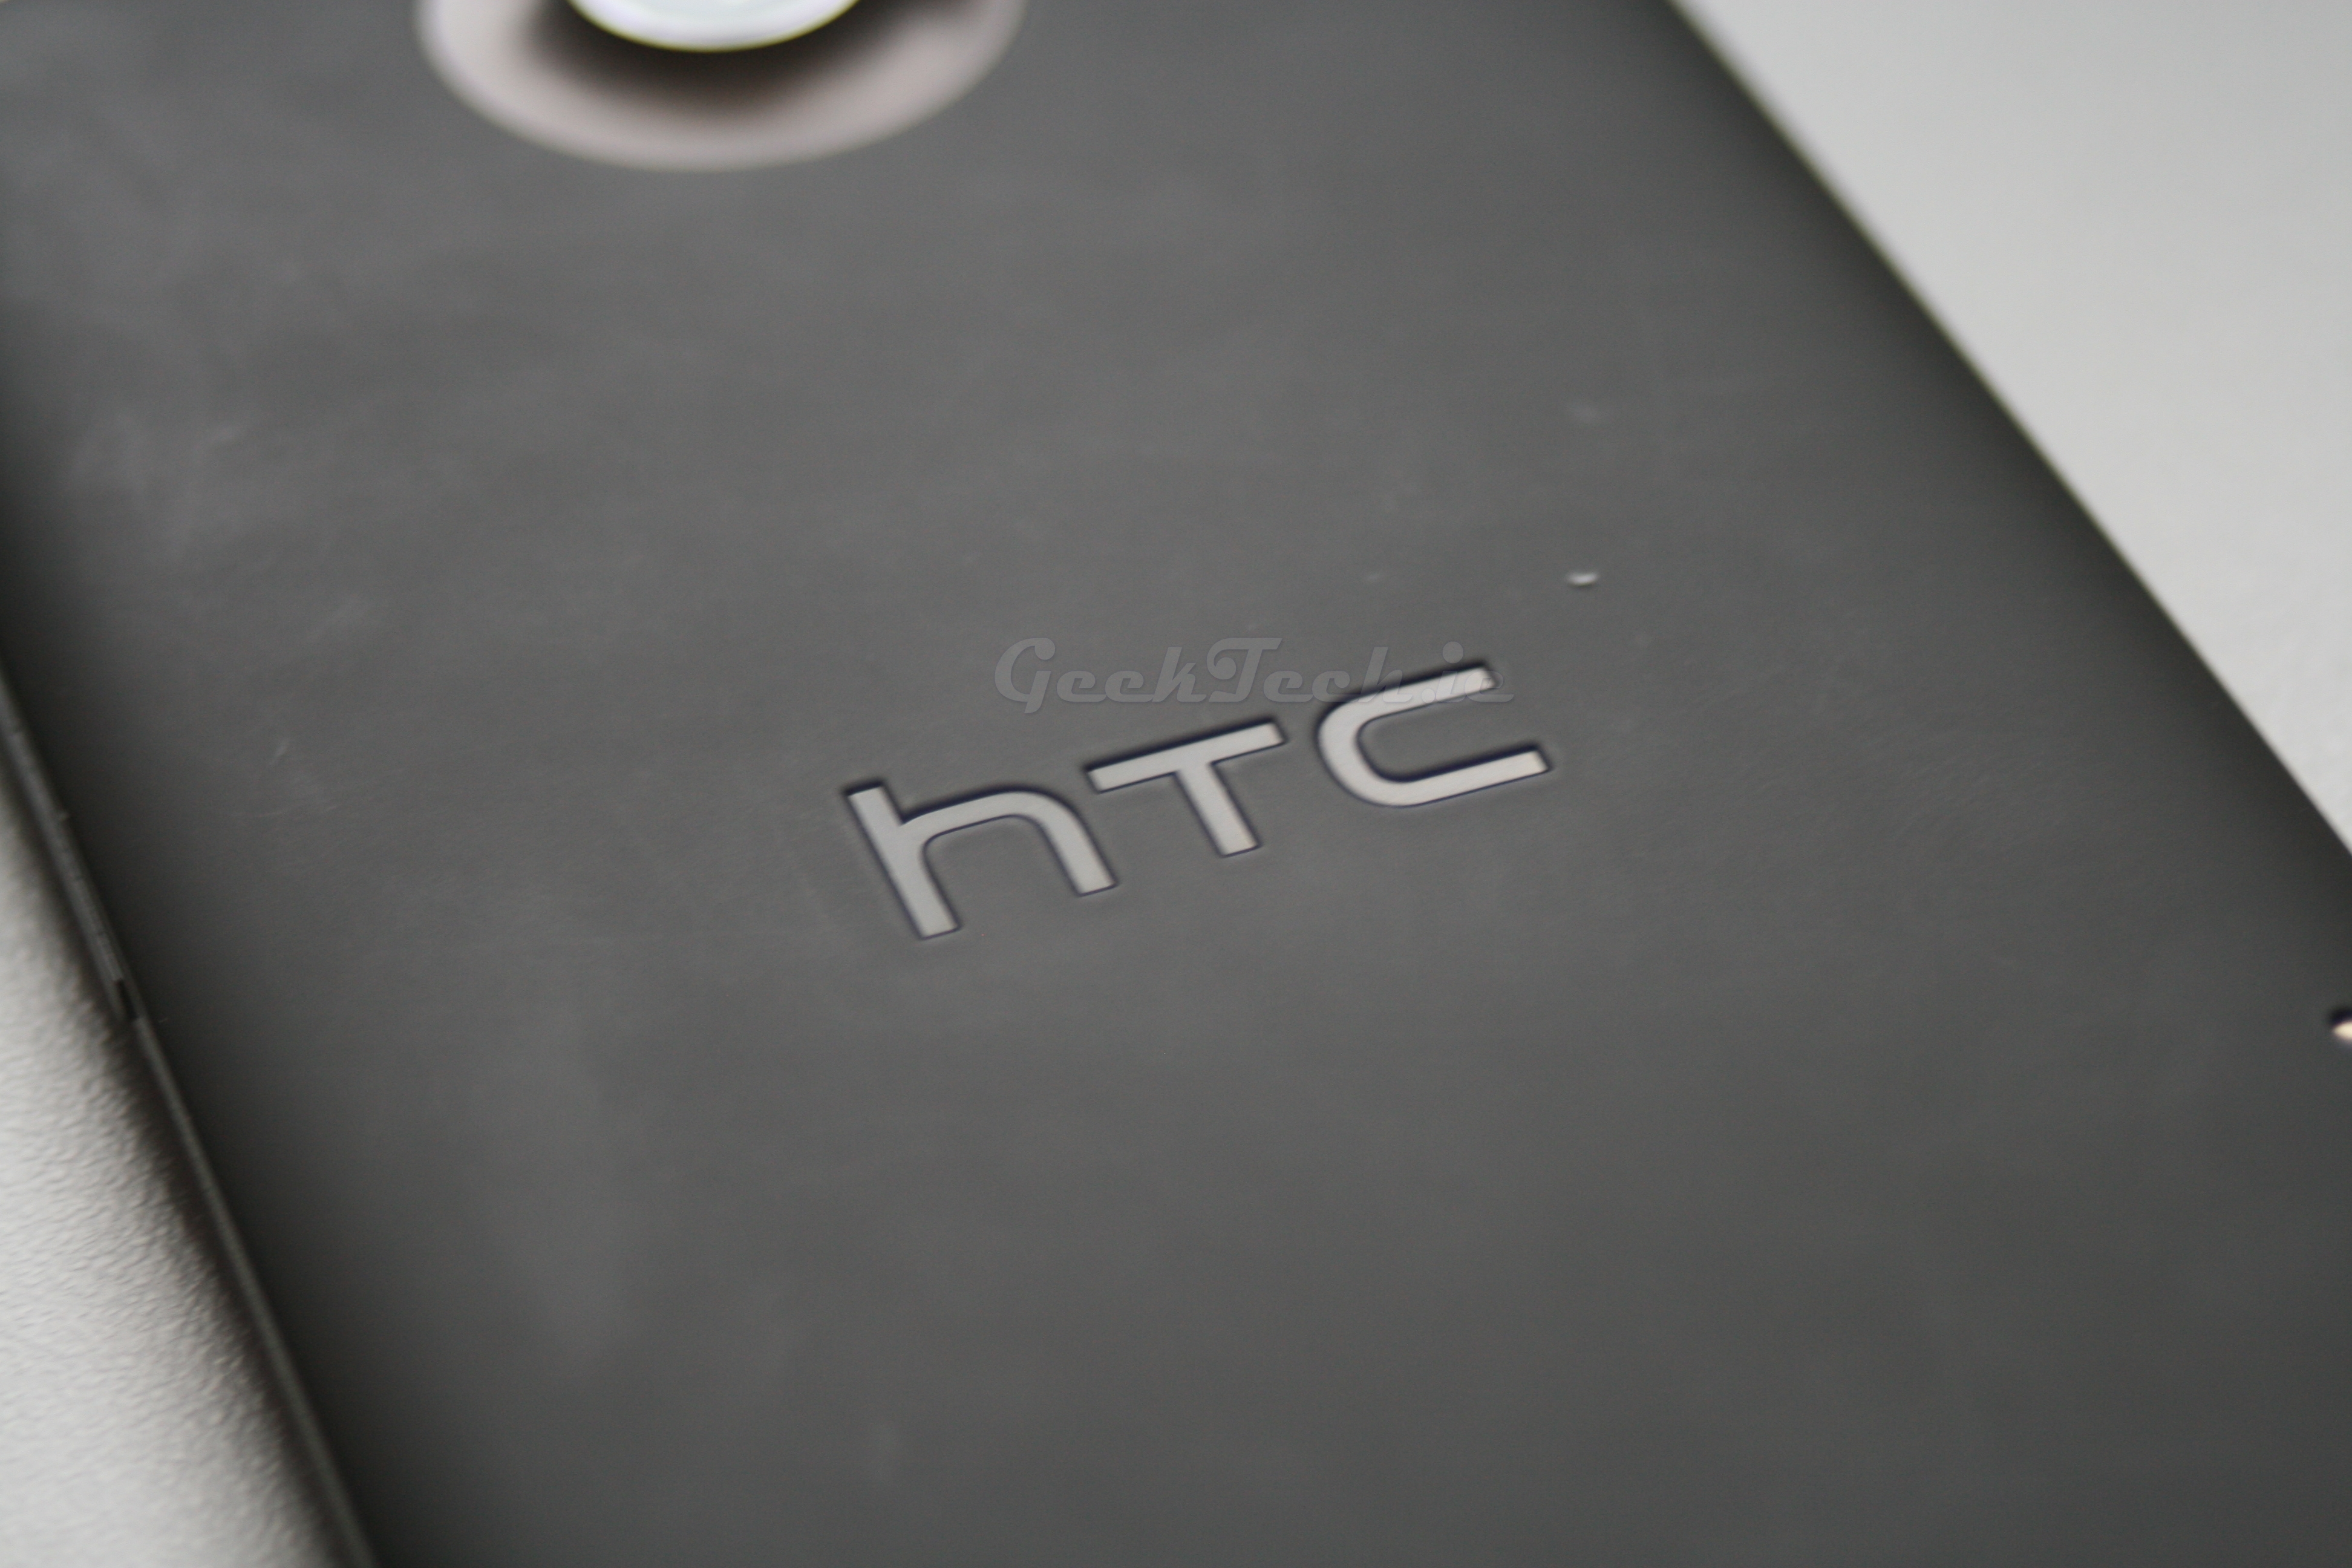 back of device